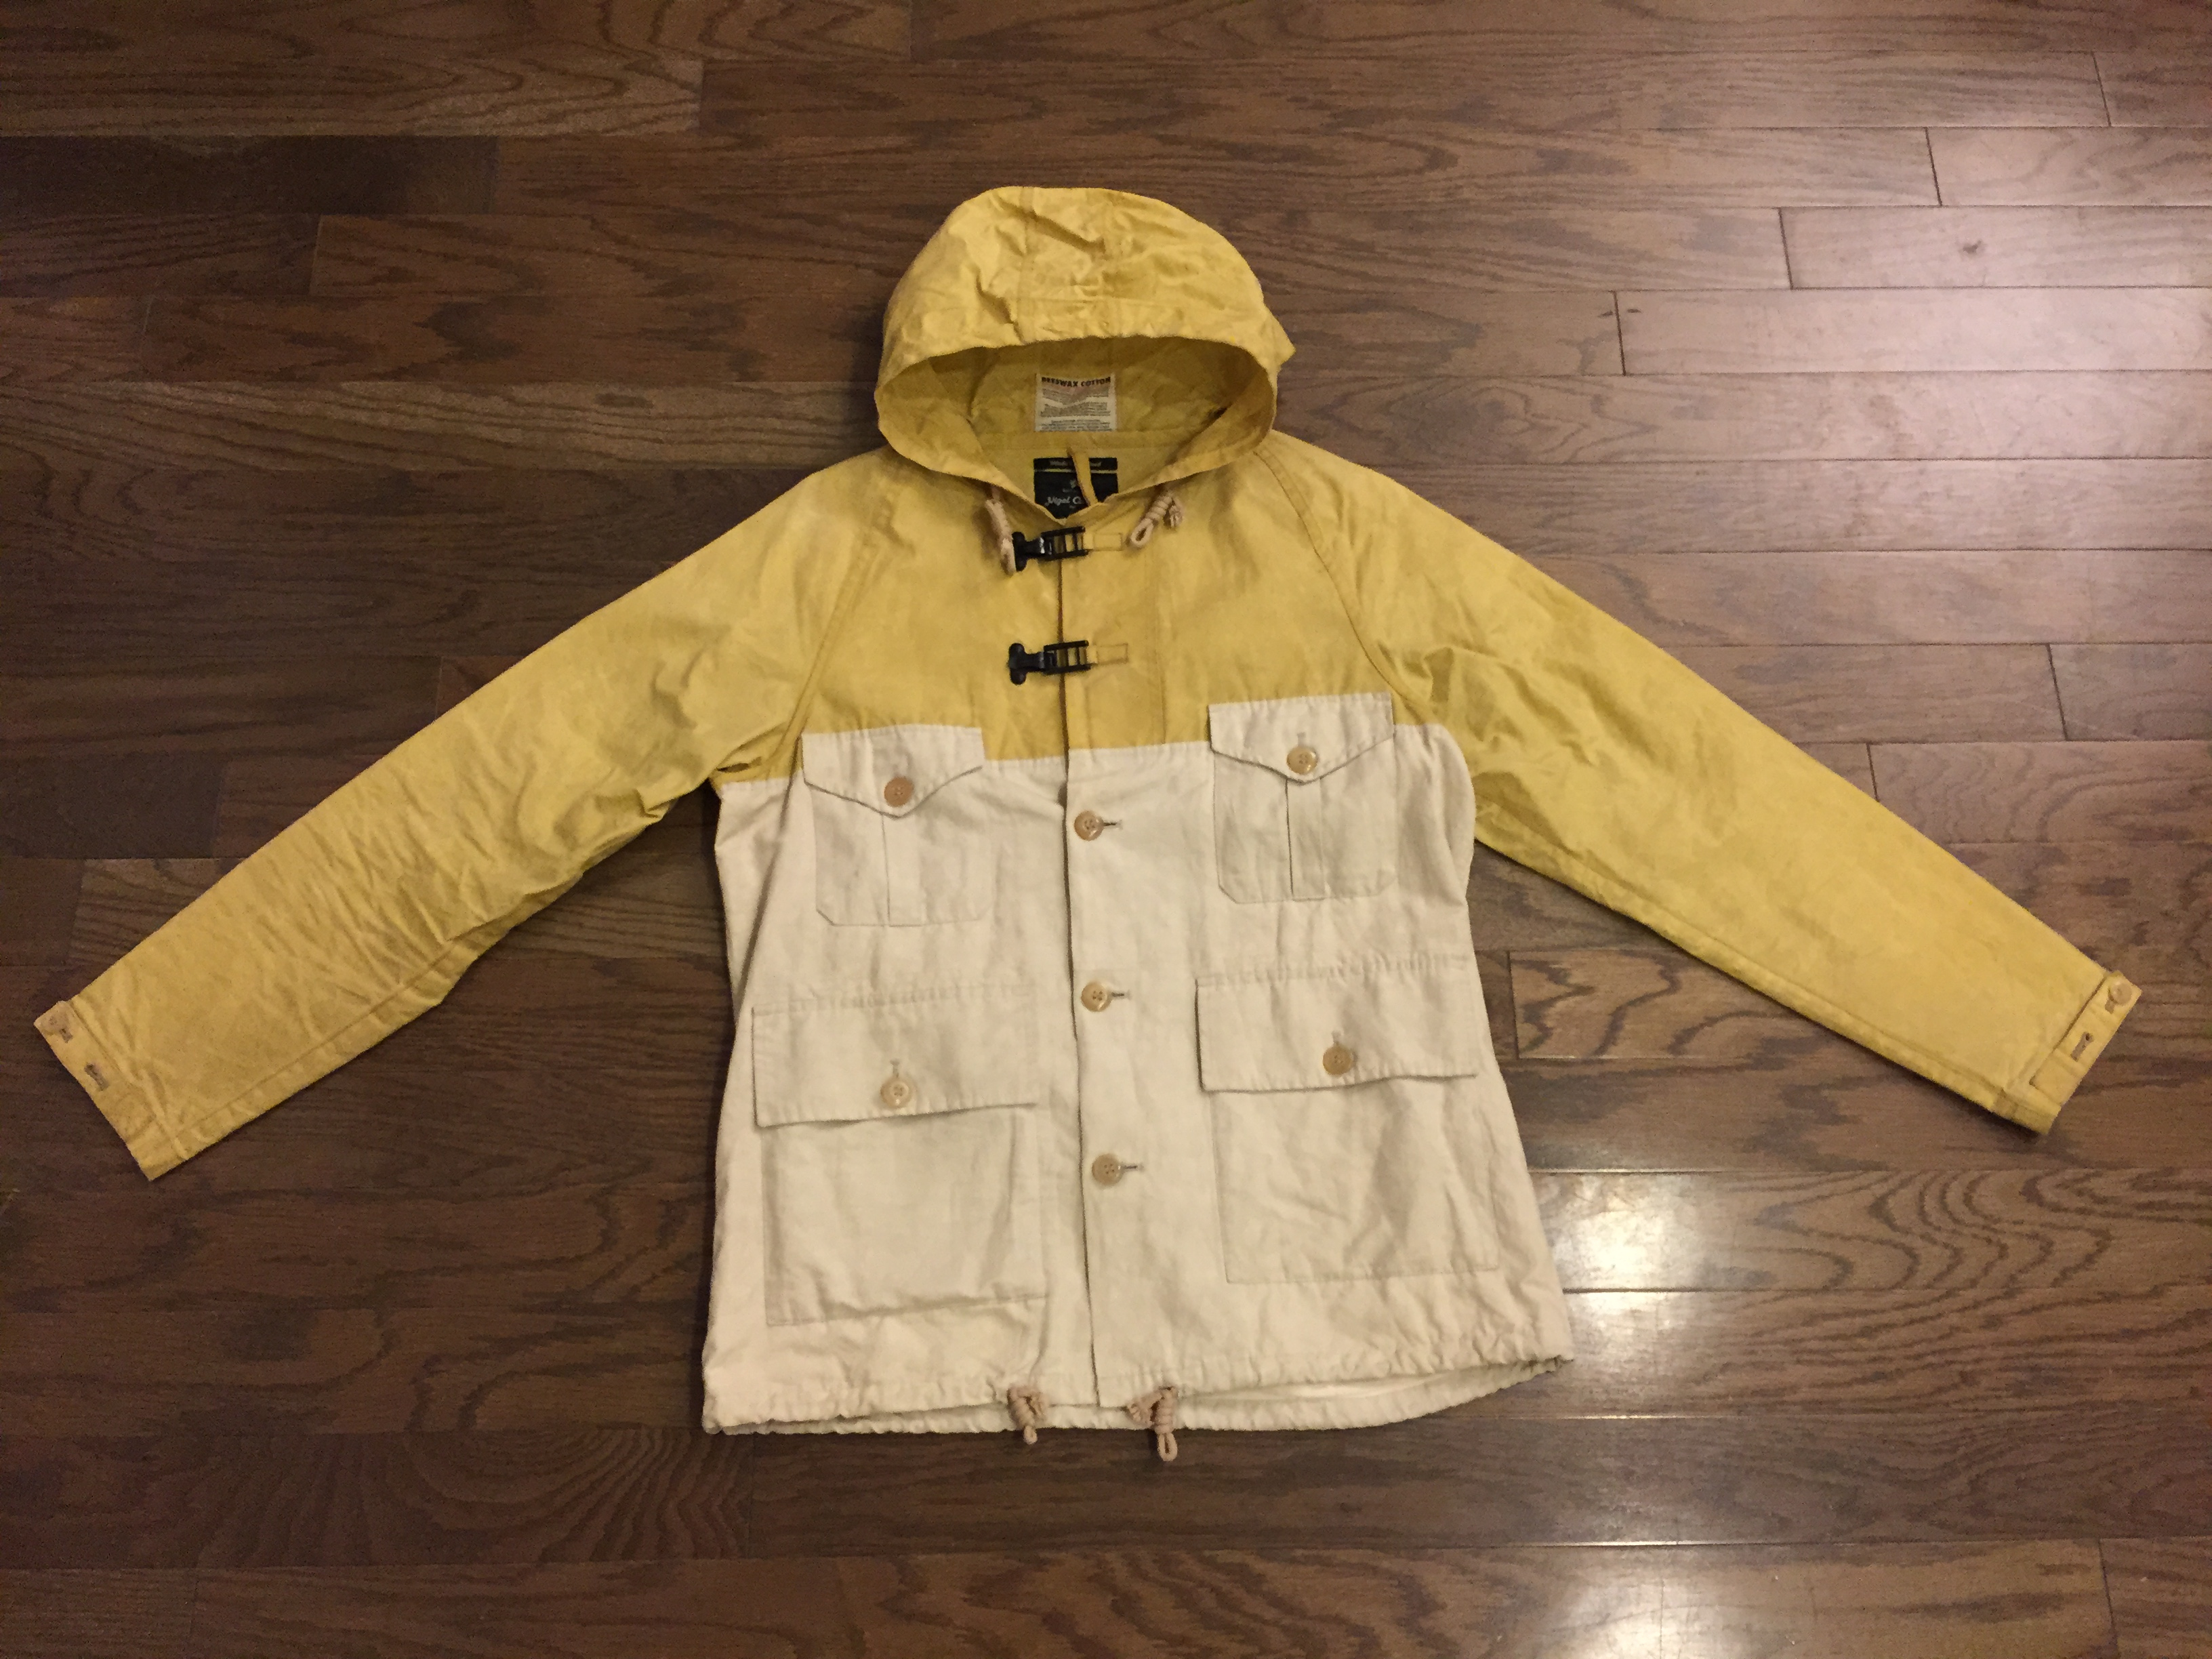 9b30f294662a Nigel Cabourn Vintage-Beeswax Cameraman Jkt Size m - for Sale - Grailed